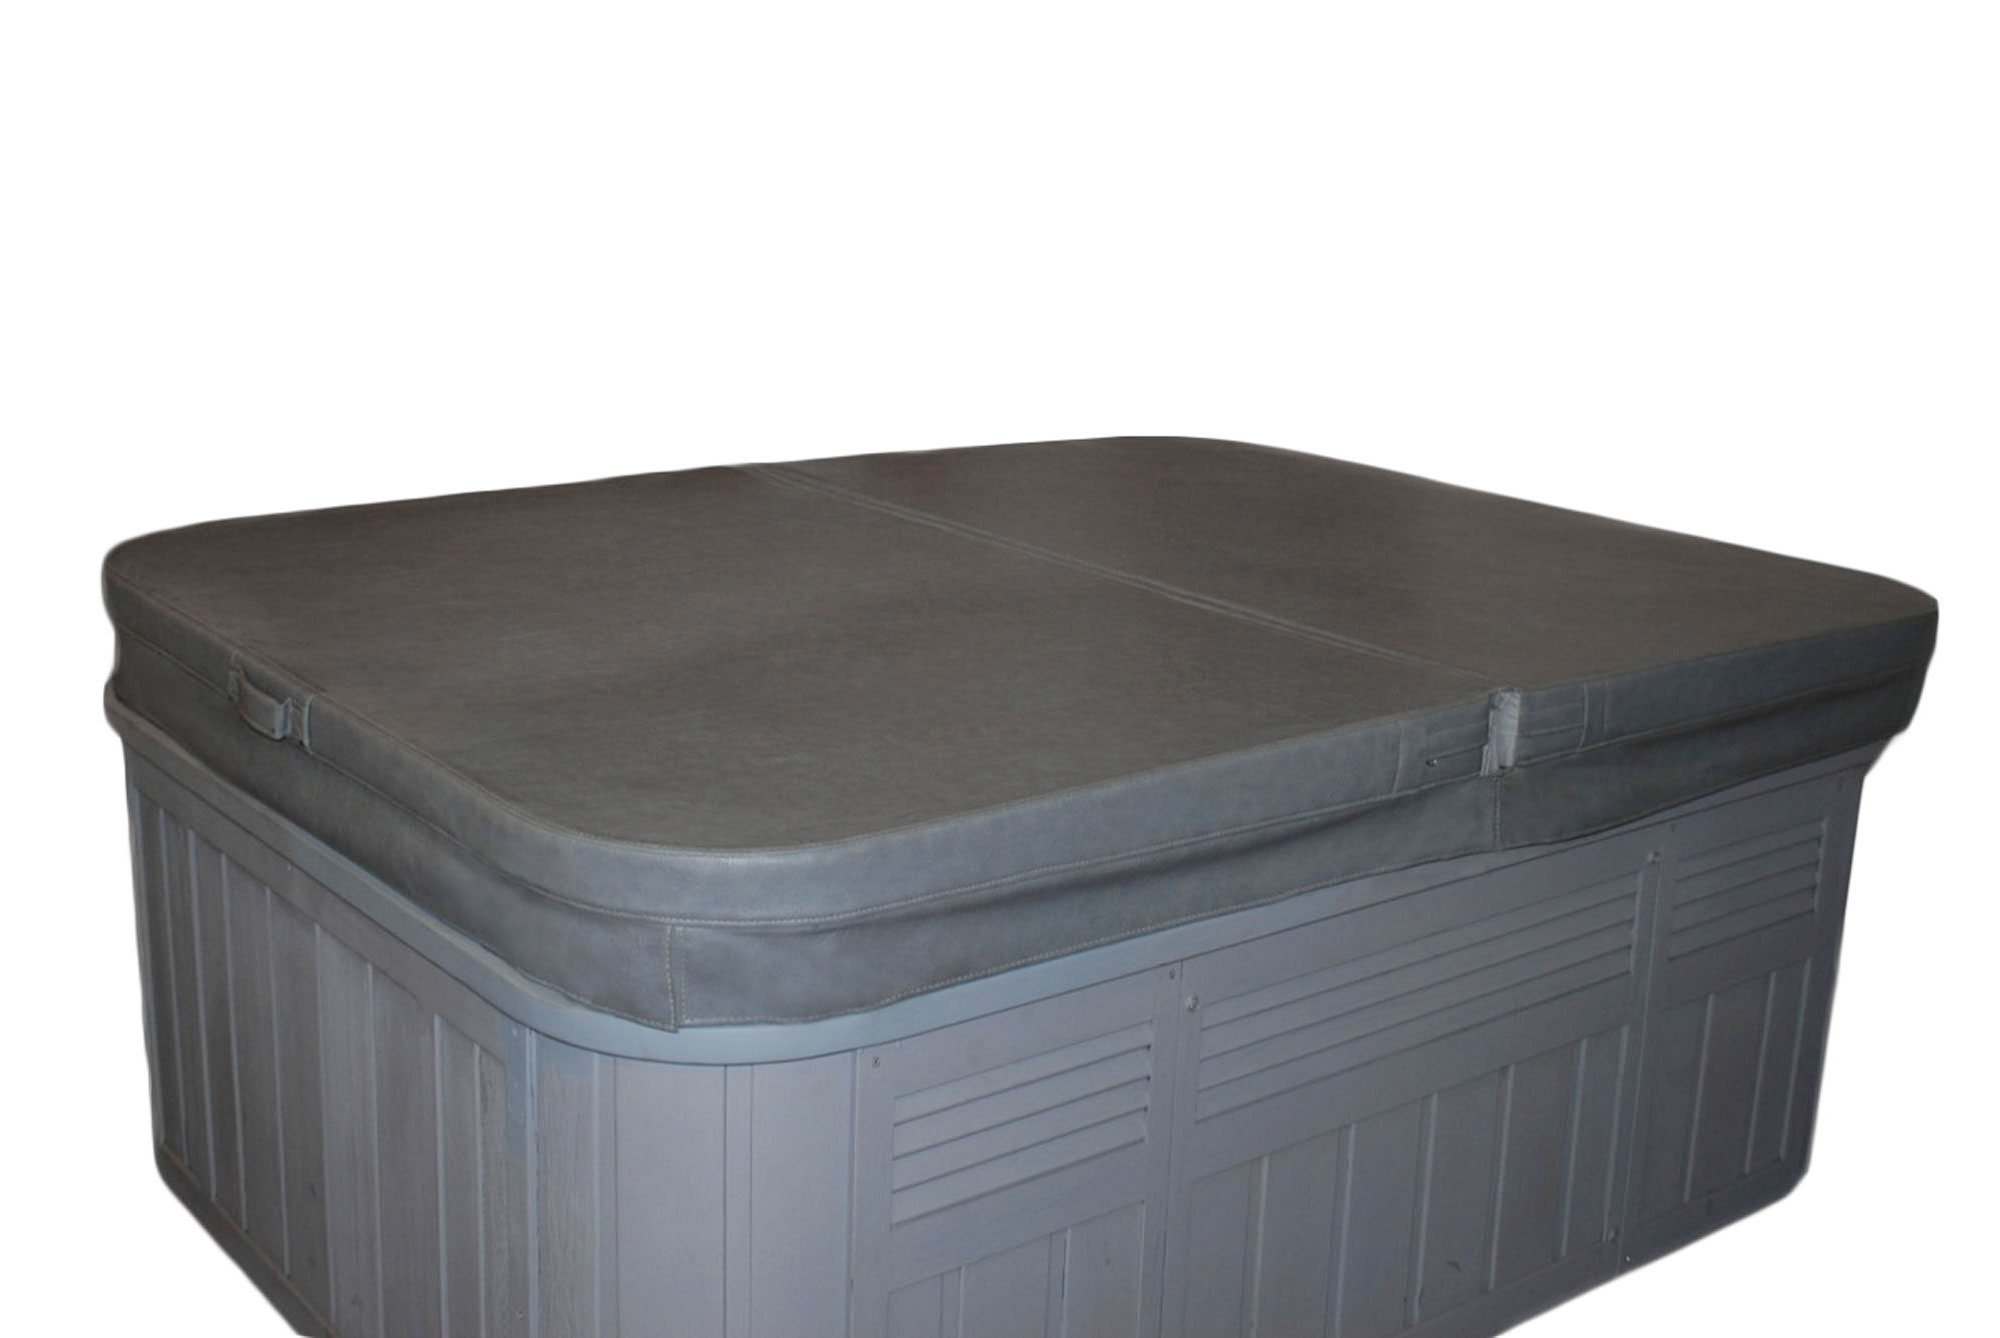 Hot Springs Prodigy Replacement Spa Cover and Hot Tub Cover - Charcoal